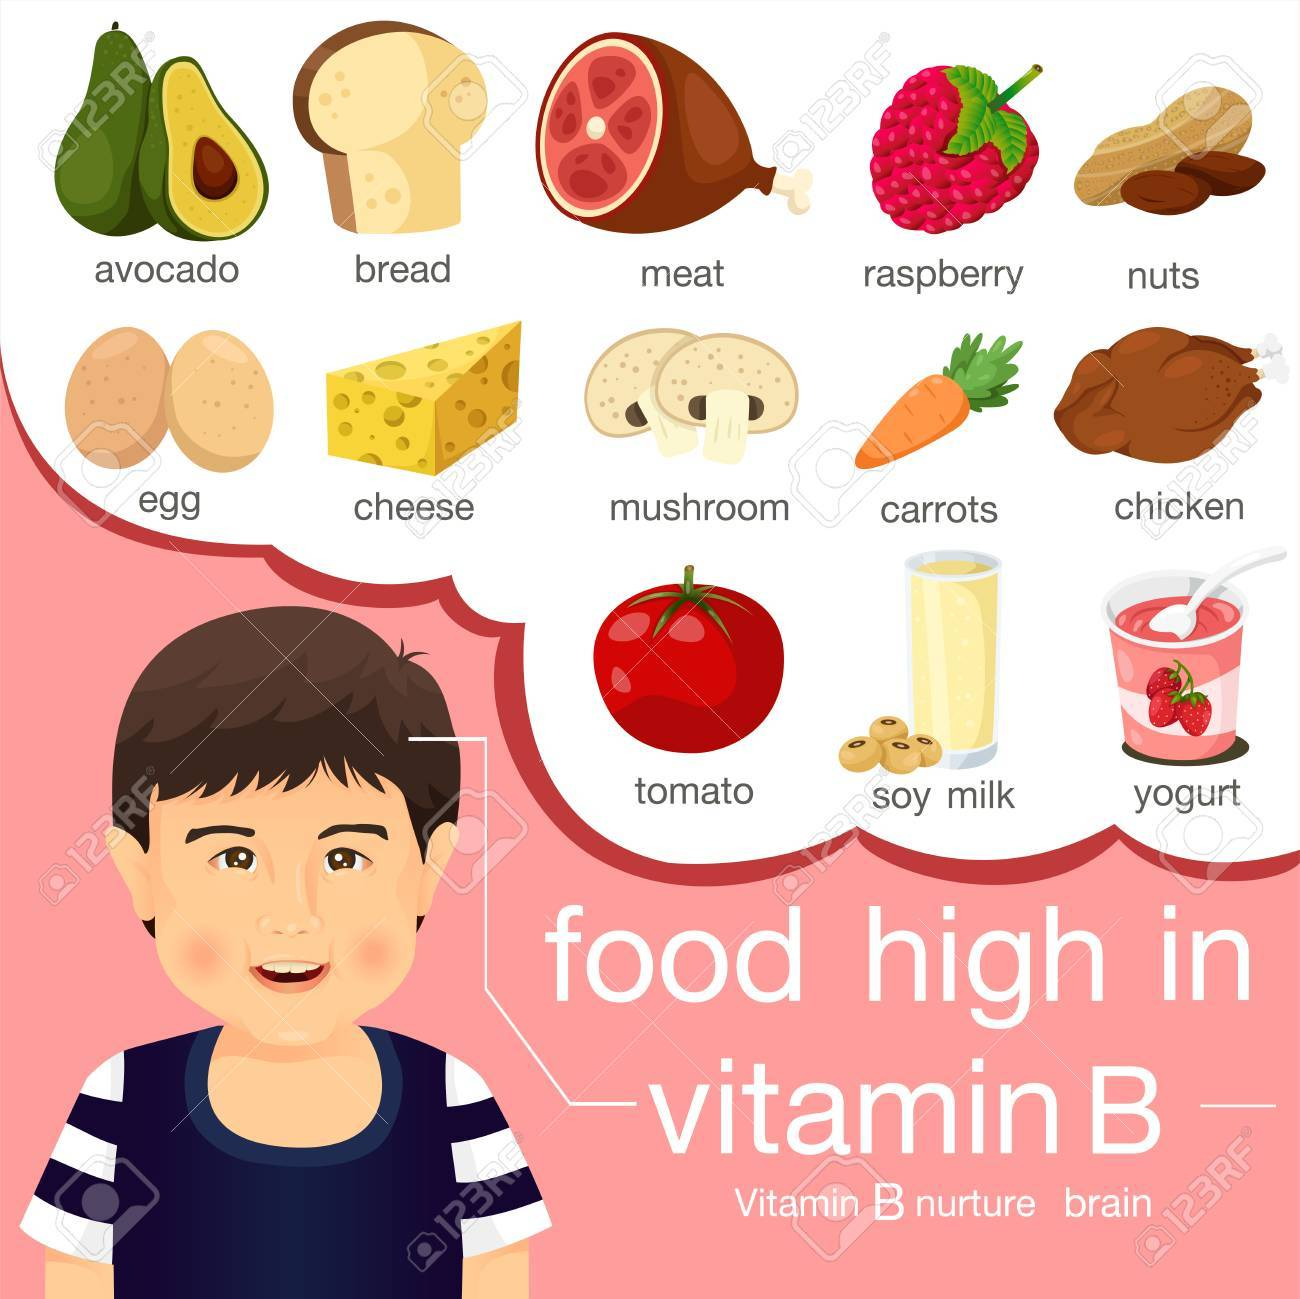 vitamine b fruit